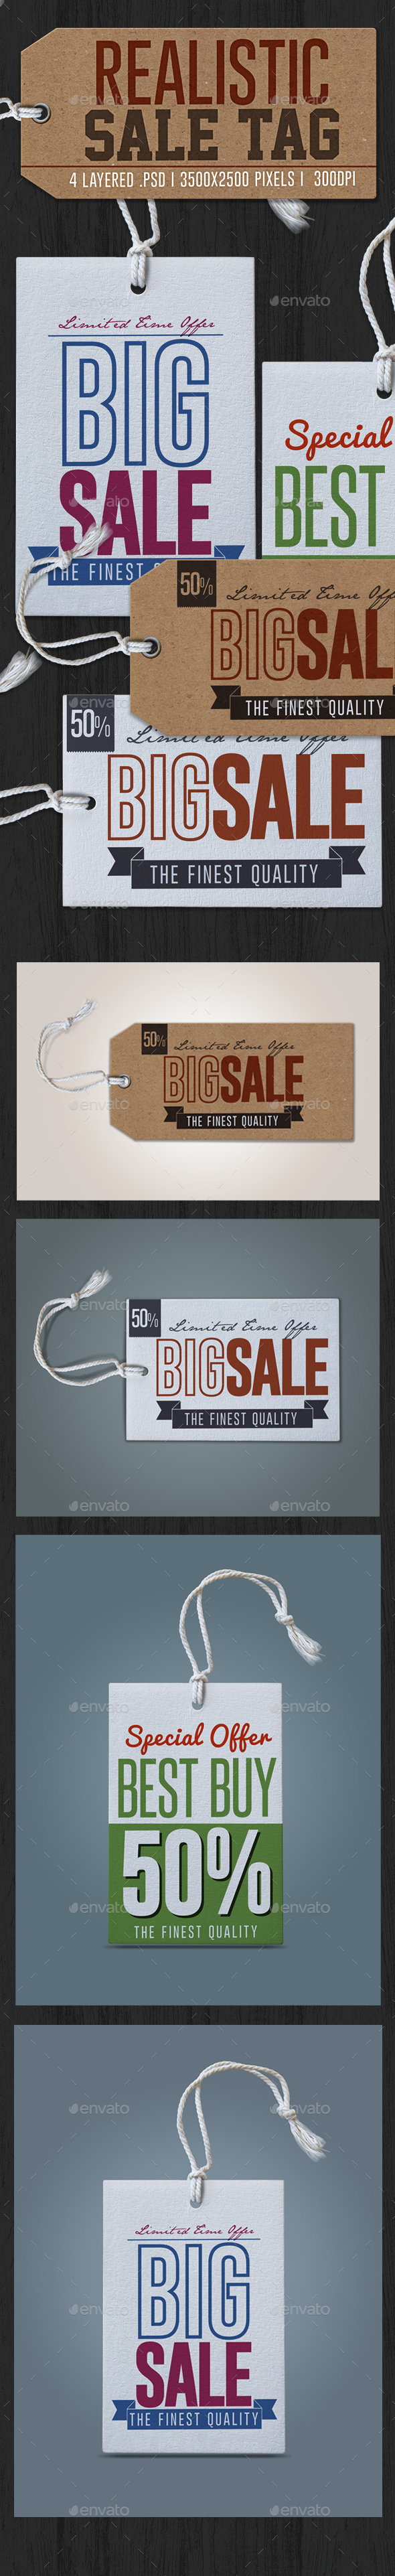 Realistic Sale Tag - Badges & Stickers Web Elements